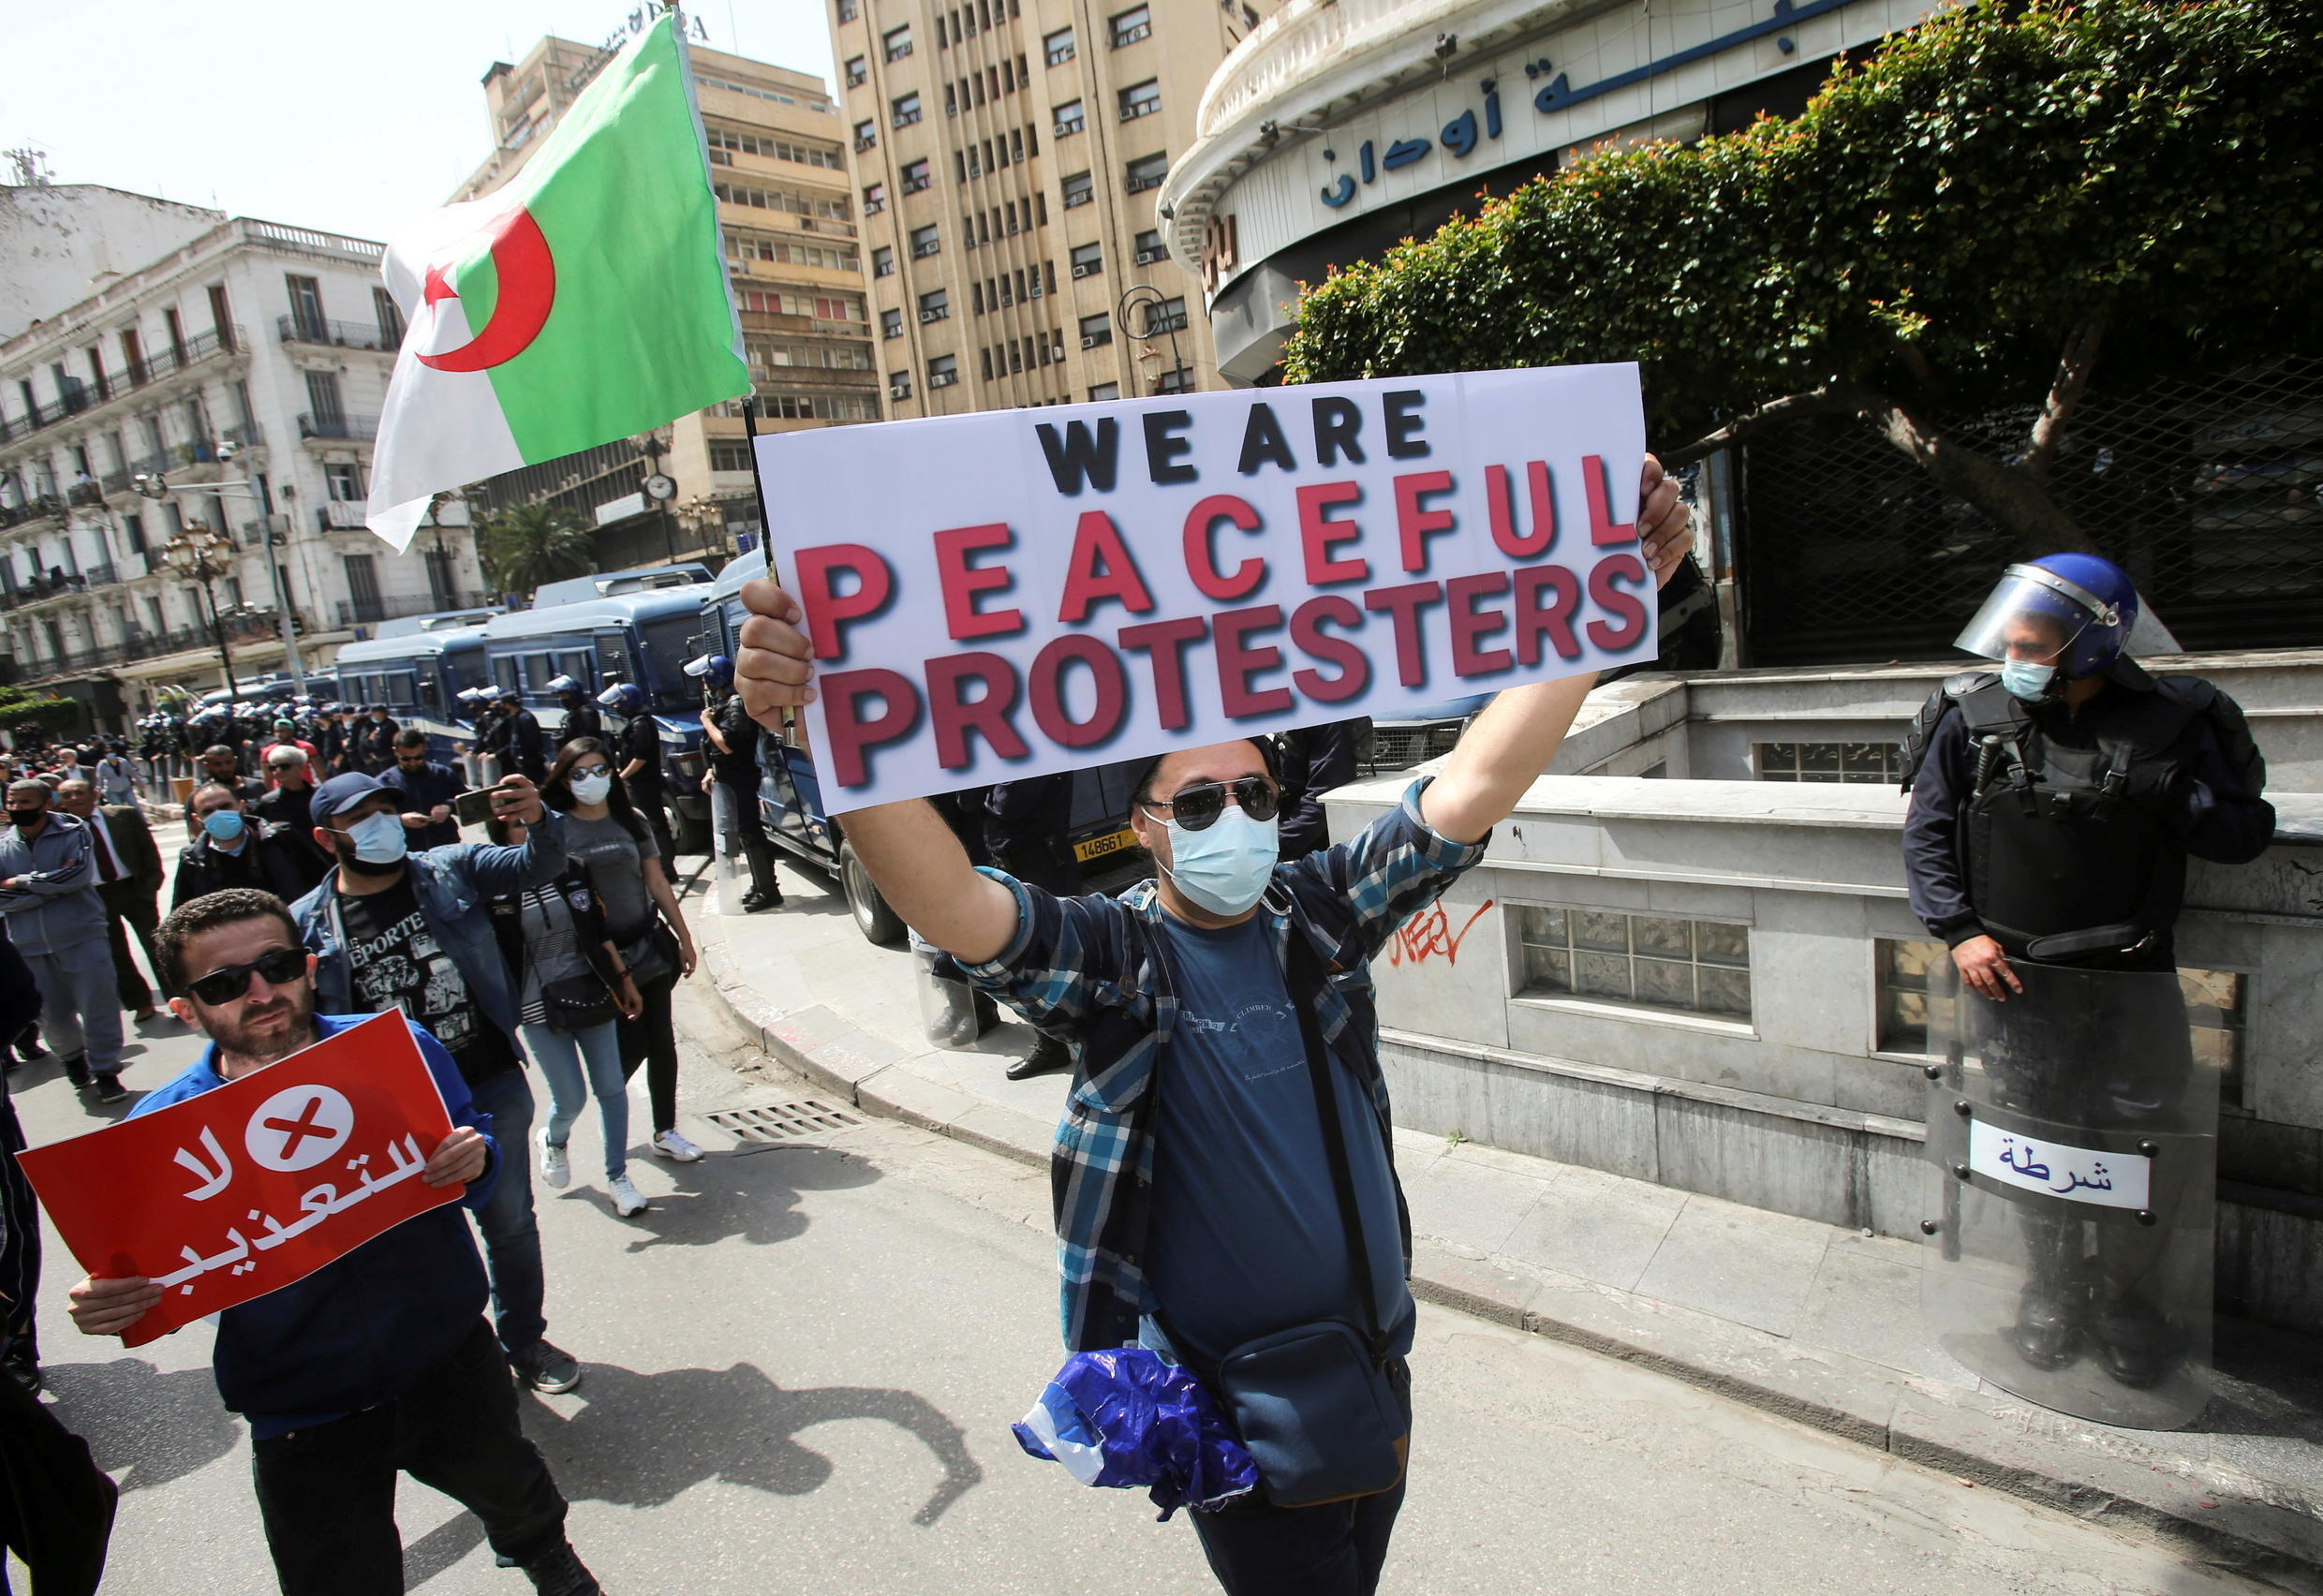 FILE PHOTO: Demonstrators march with banners and flags during a protest demanding political change, in Algiers, Algeria April 9, 2021.